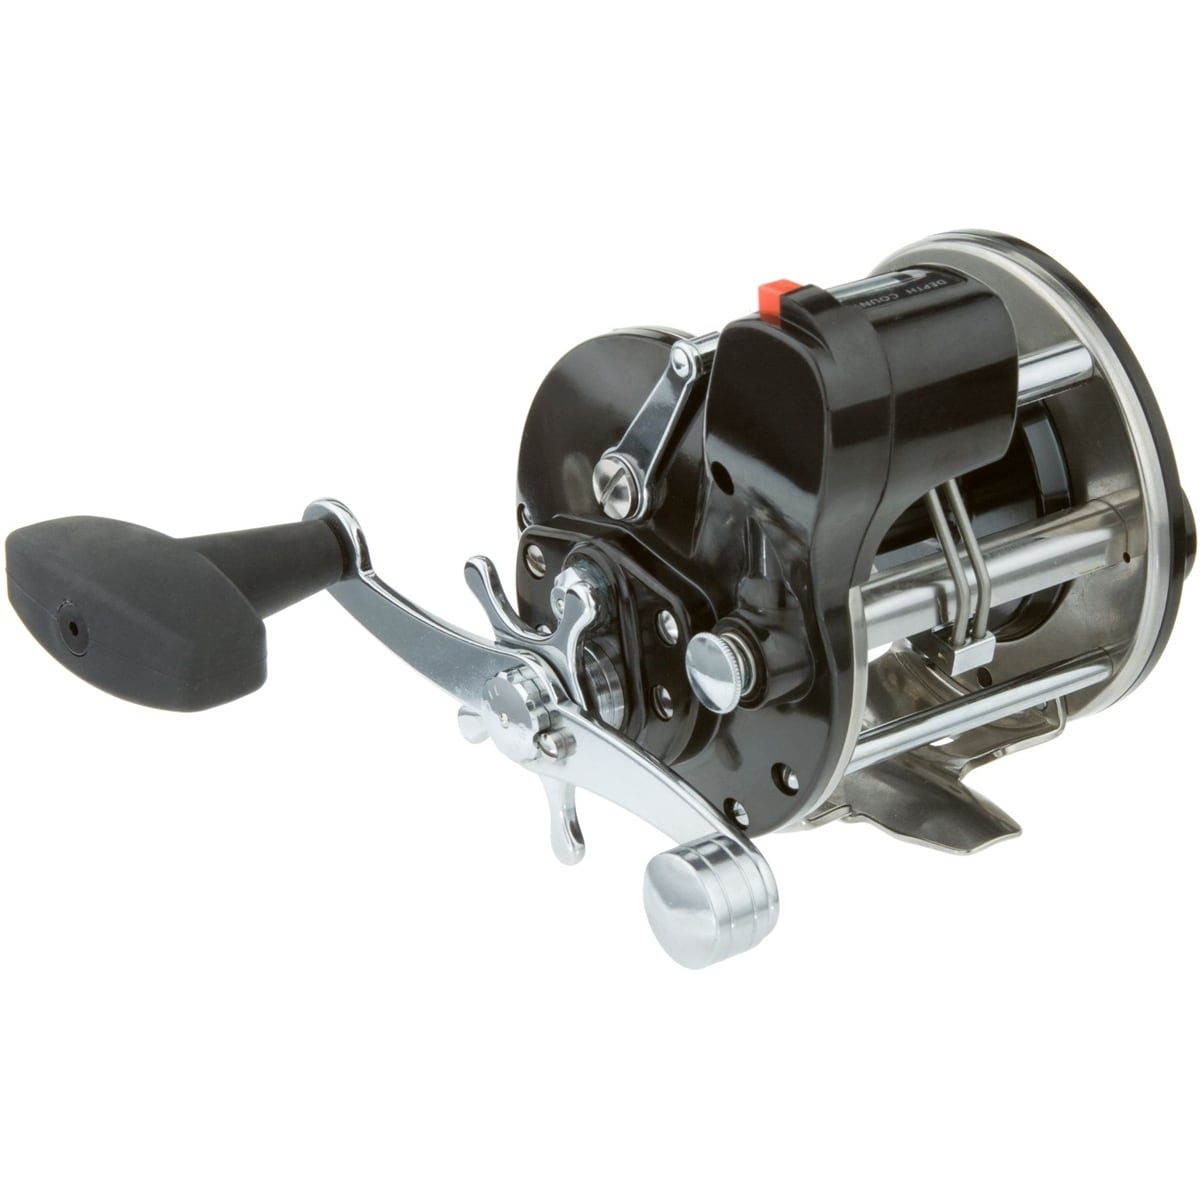 Shimano Tekota 800 Star Drag Conventional Reel